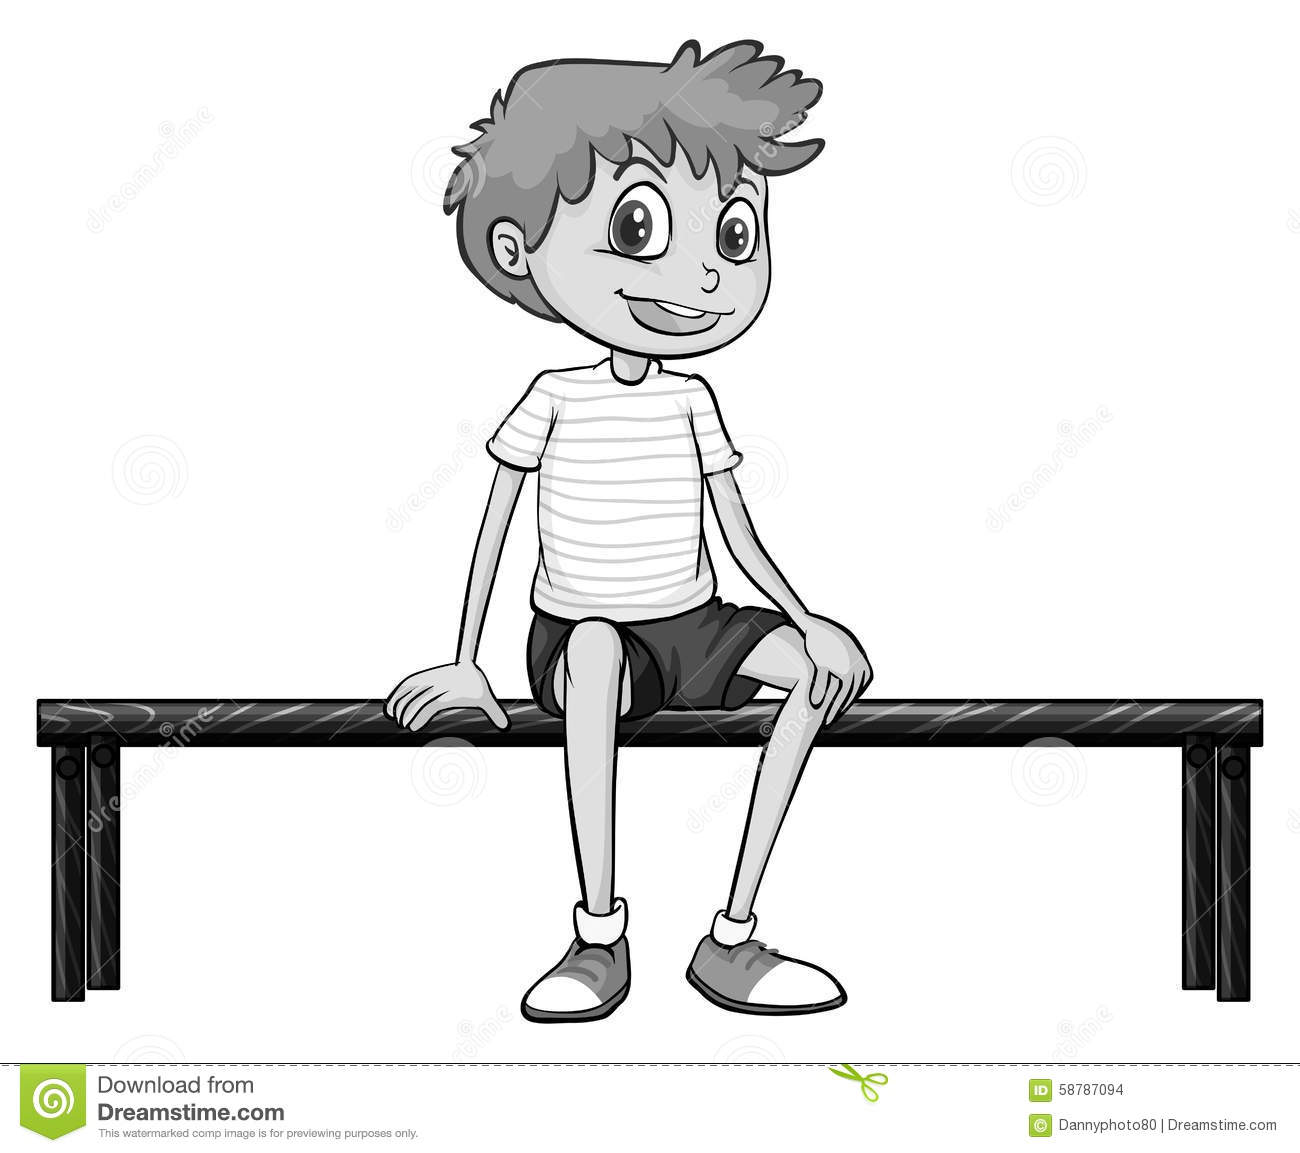 Little Boy Sitting On Bench Stock Vector - Image: 58787094